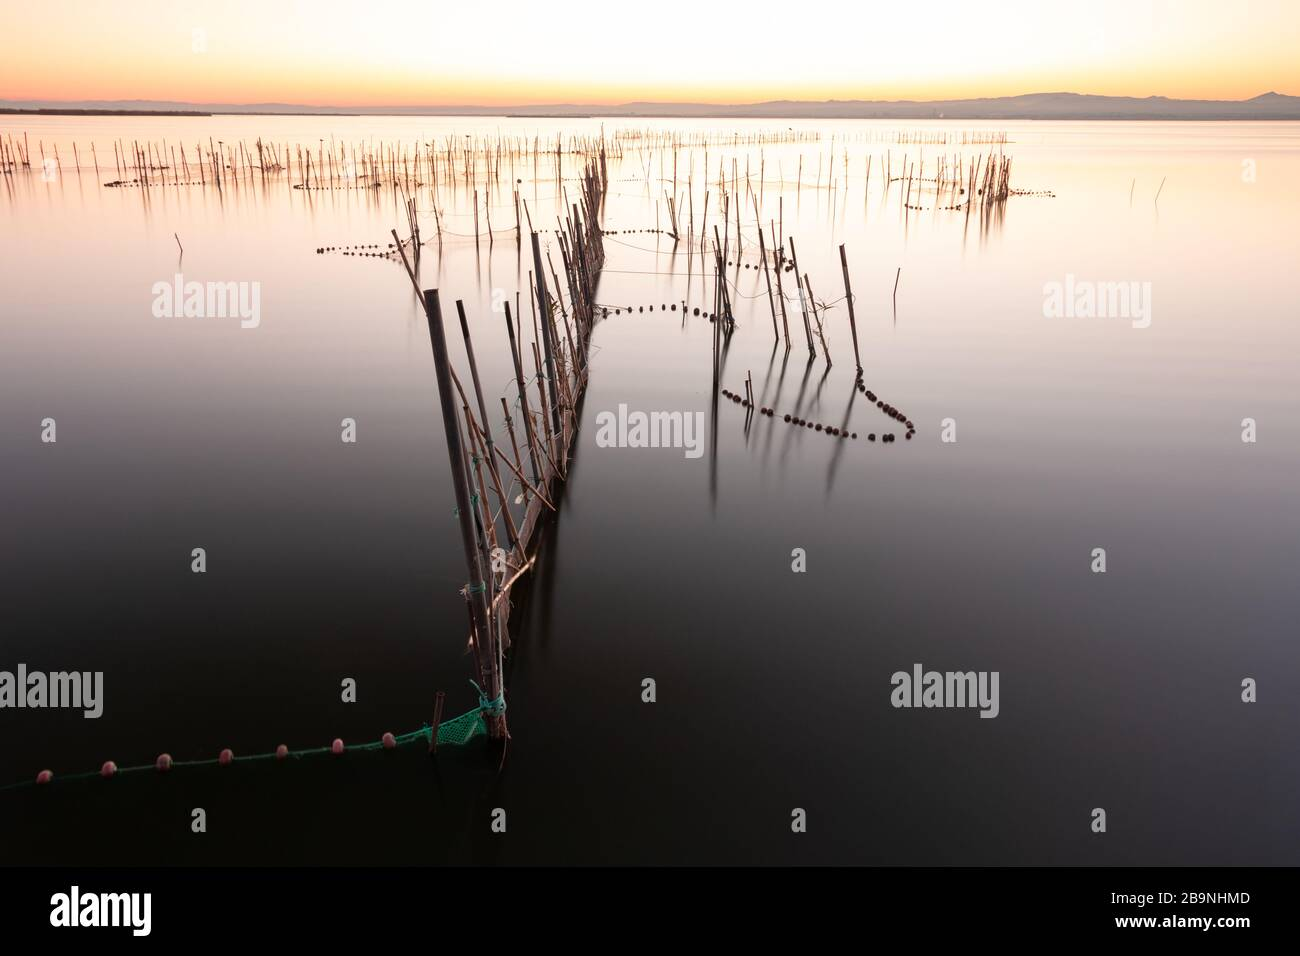 Image of the silky water of a lake from which reeds emerge with fishing nets tied to them. In the coastal lagoon of Valencia, Spain. Nature concept Stock Photo